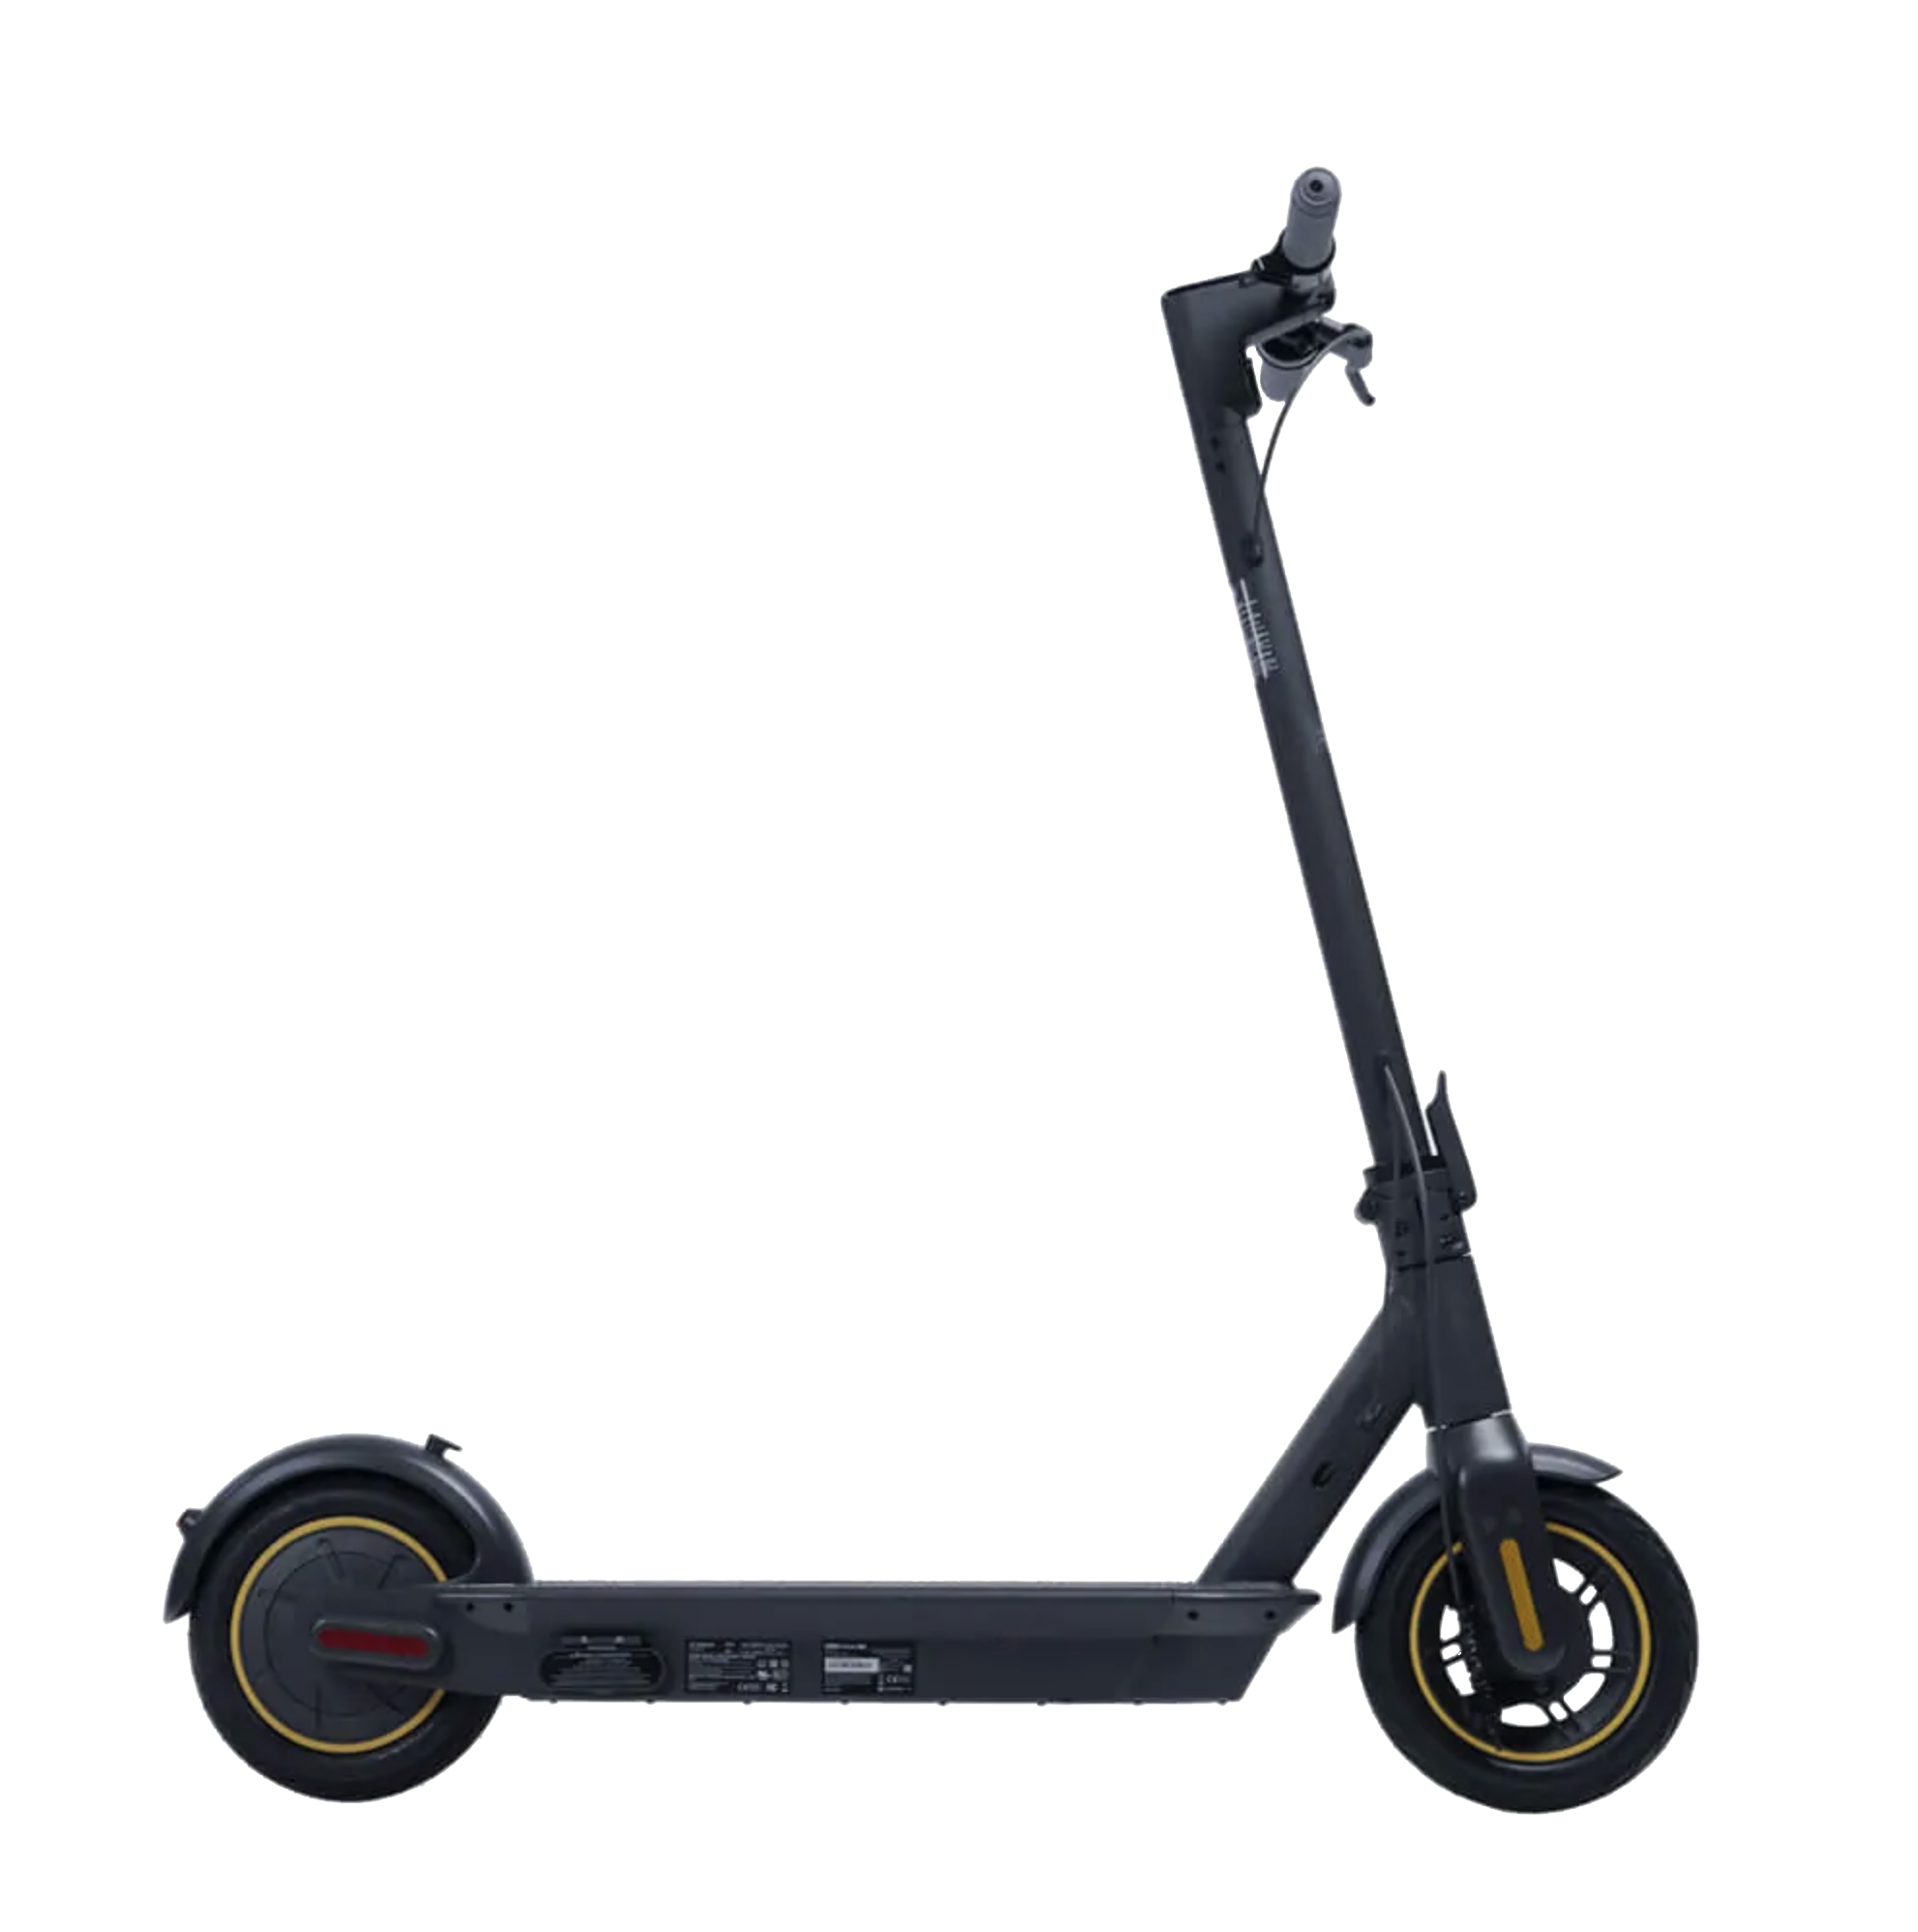 Segway Ninebot Max UL2272 Certified Electric Scooter